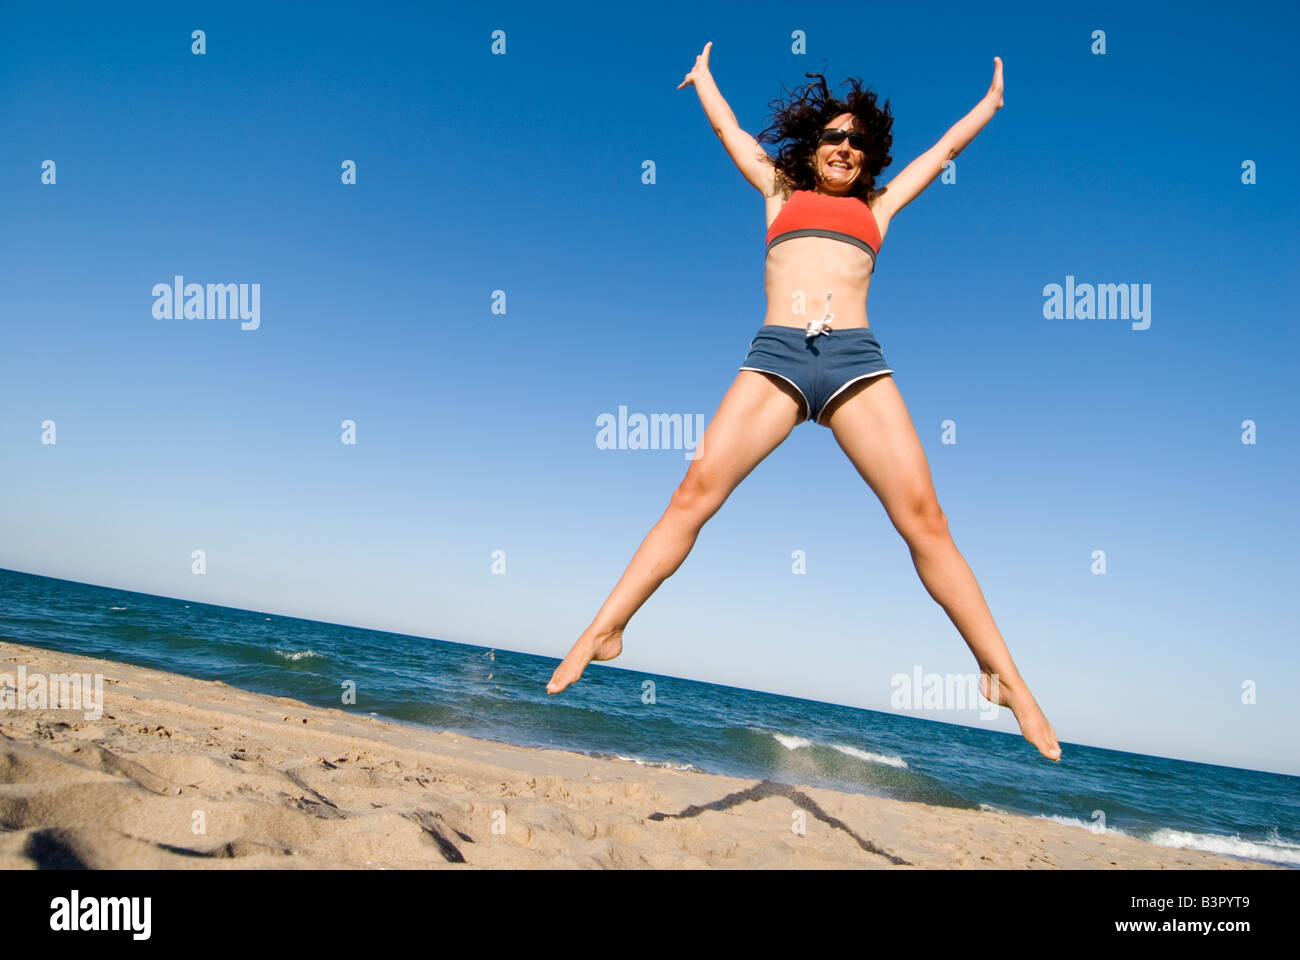 Model Released young woman doing star jump on a sandy beach against a clear blue sky. El Saler. Valencia Spain - Stock Image